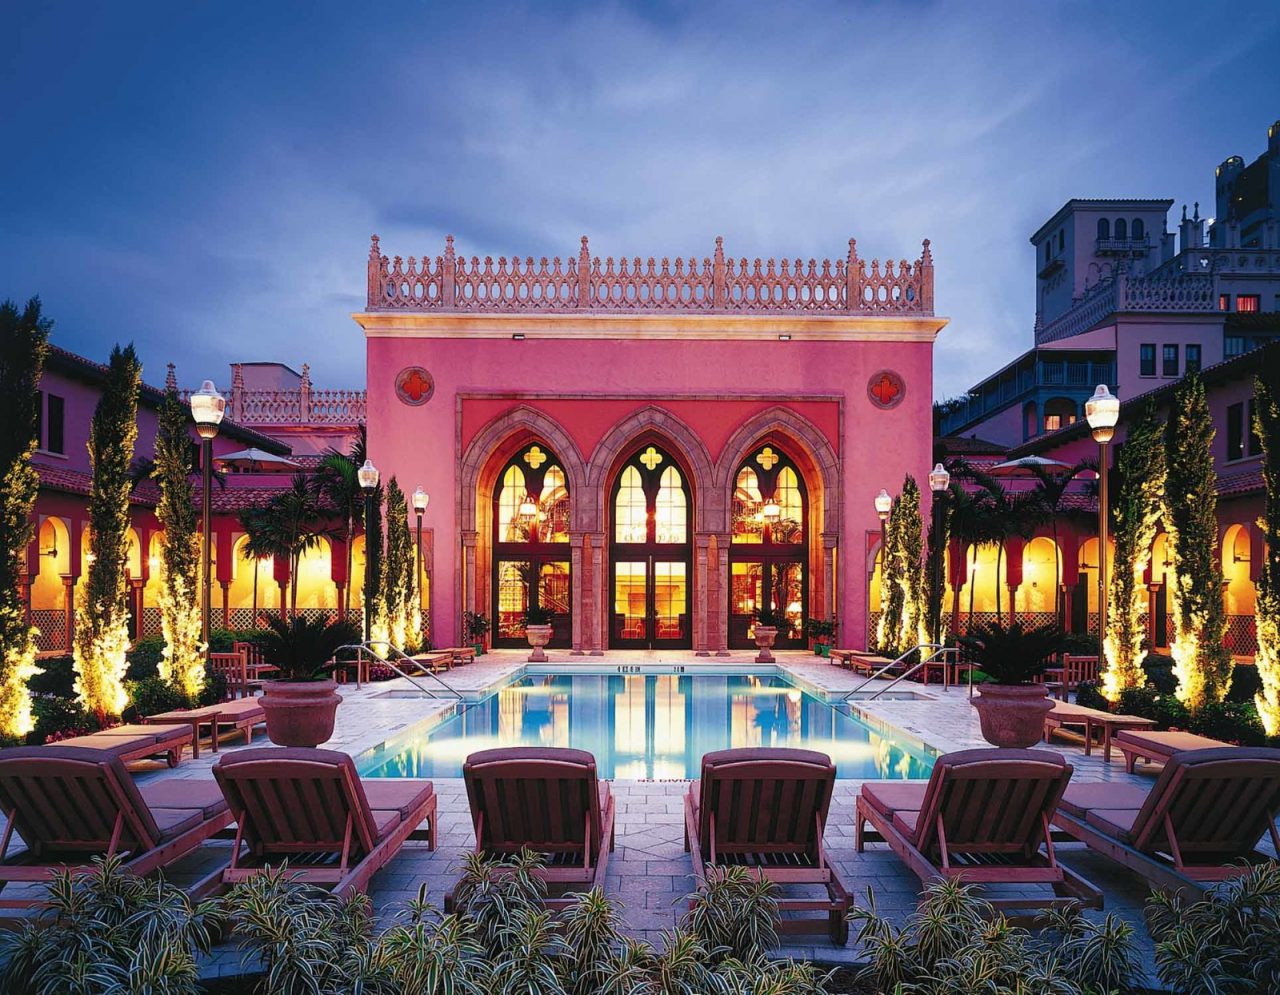 Boca Raton Resort & Club, Boca Raton, Florida. Credit: Boca Raton Resort & Club